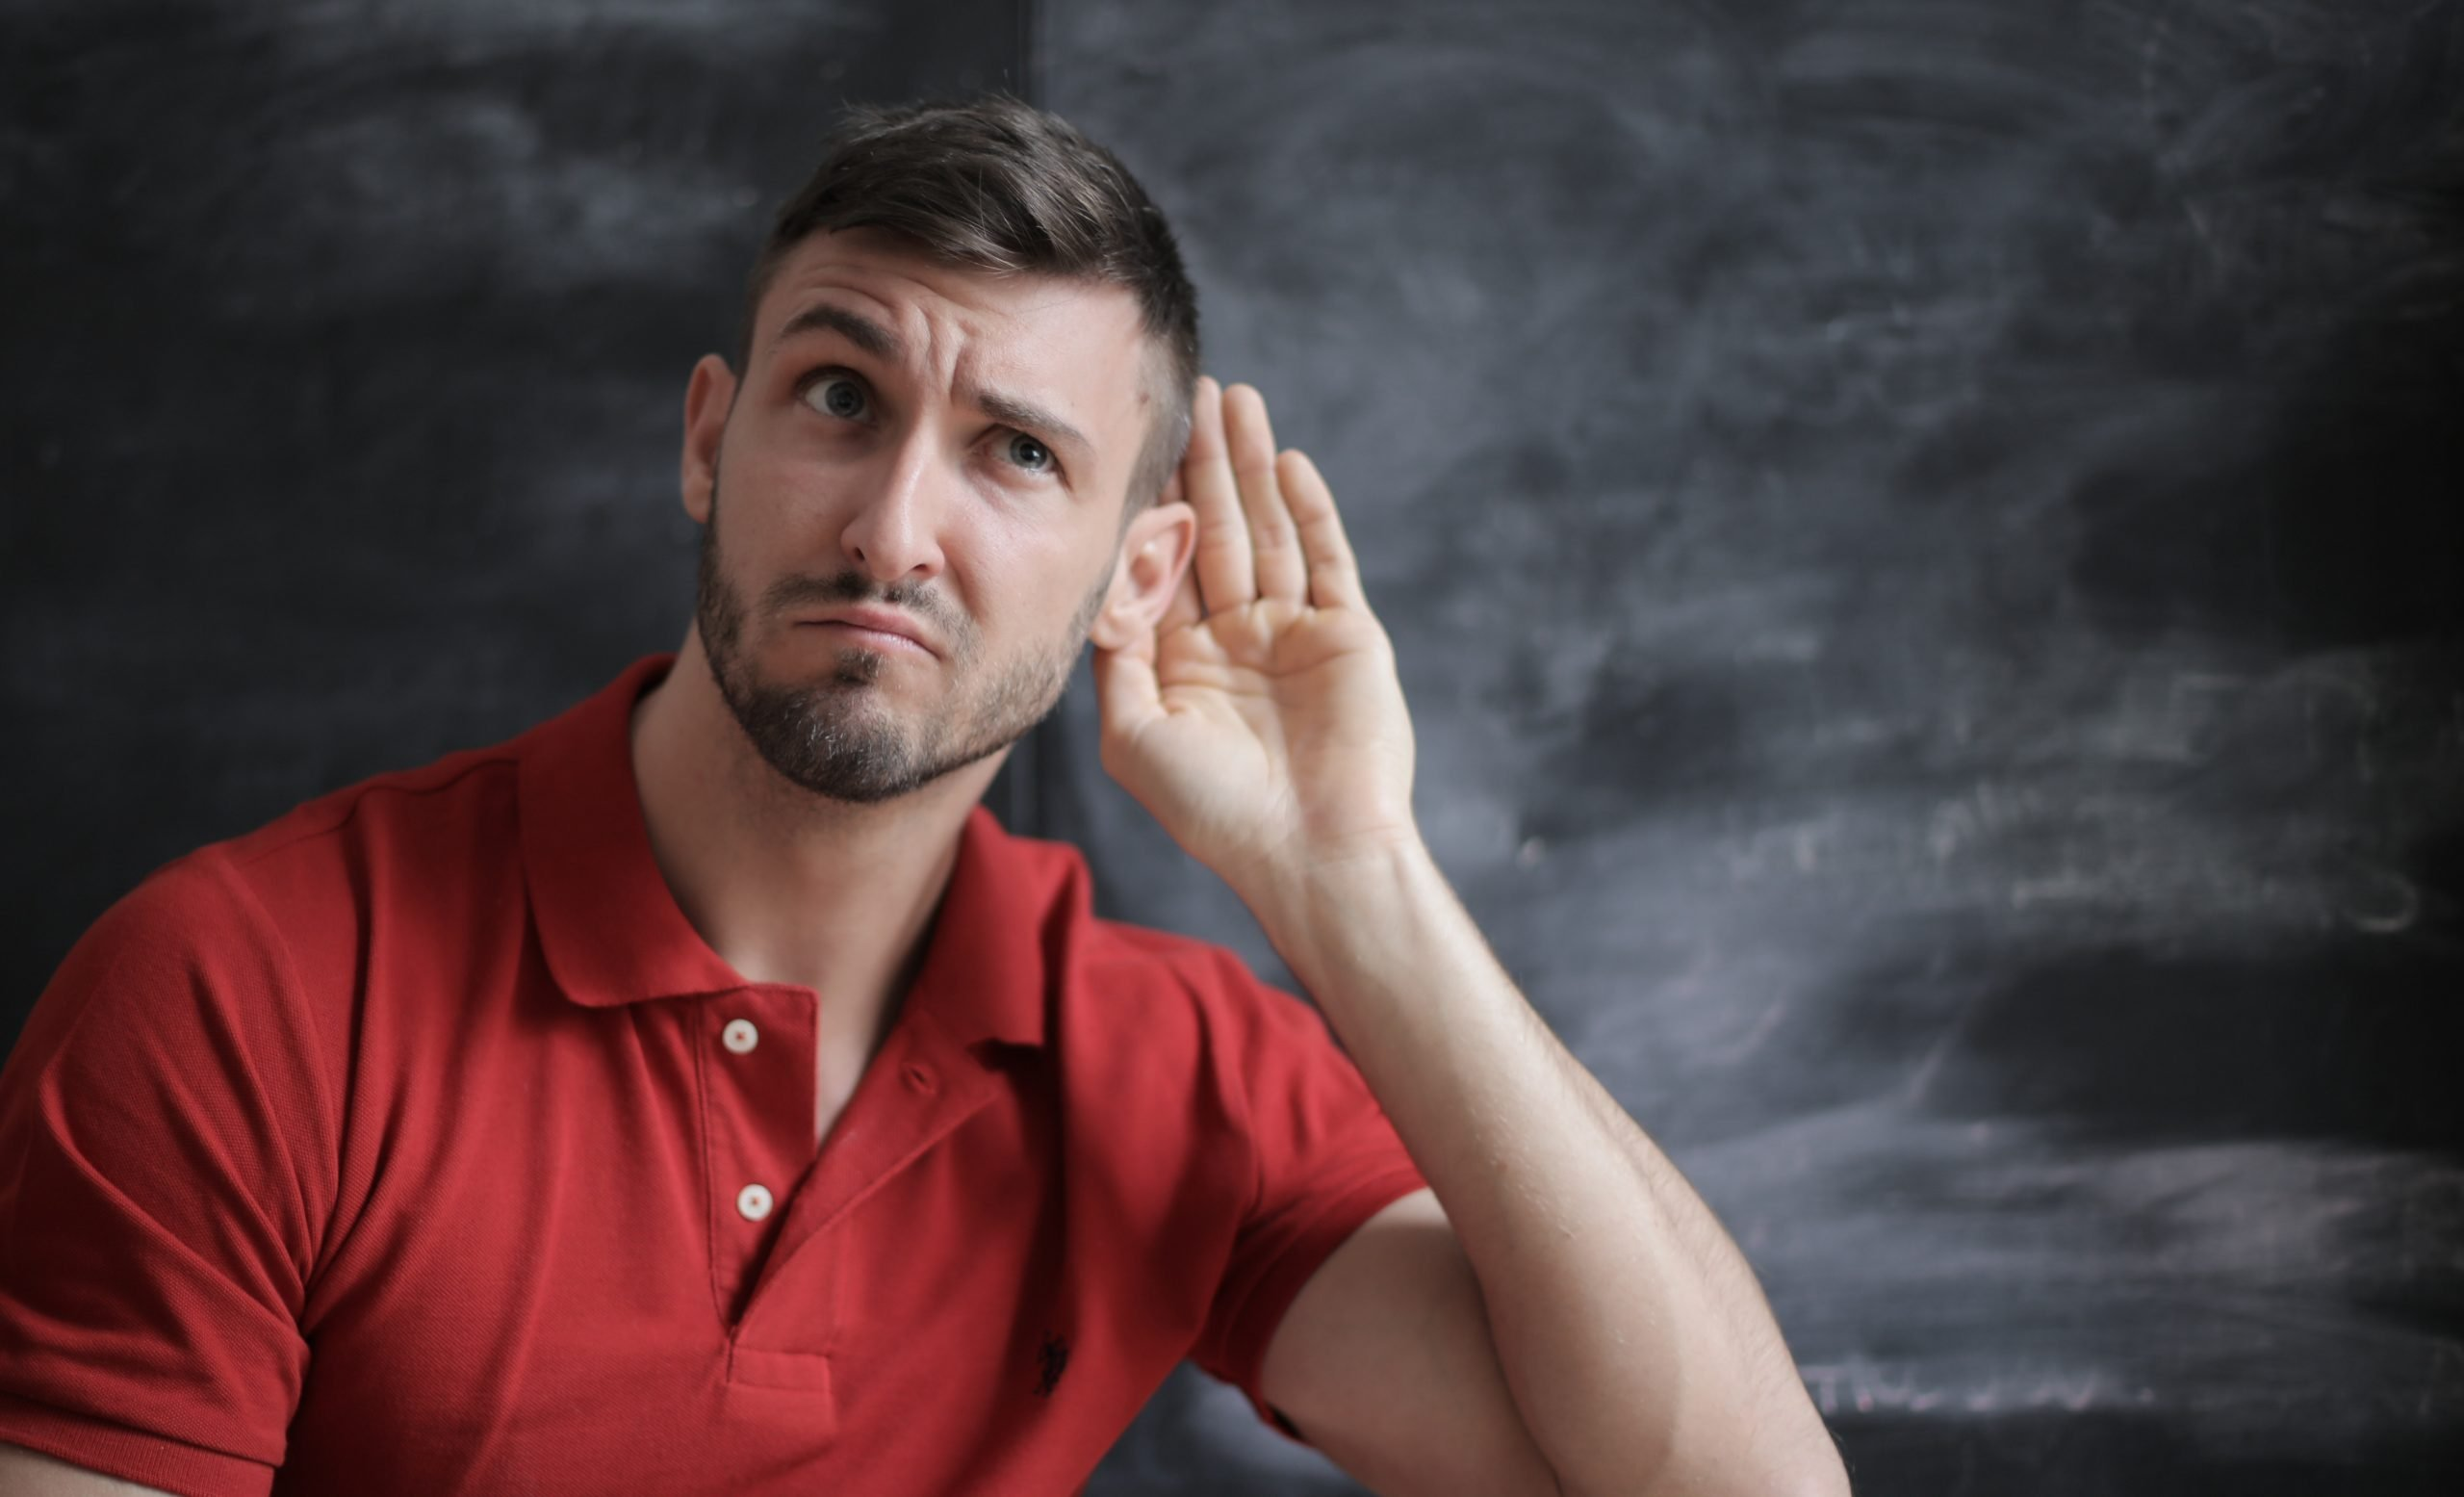 Active listening leads to better conversations